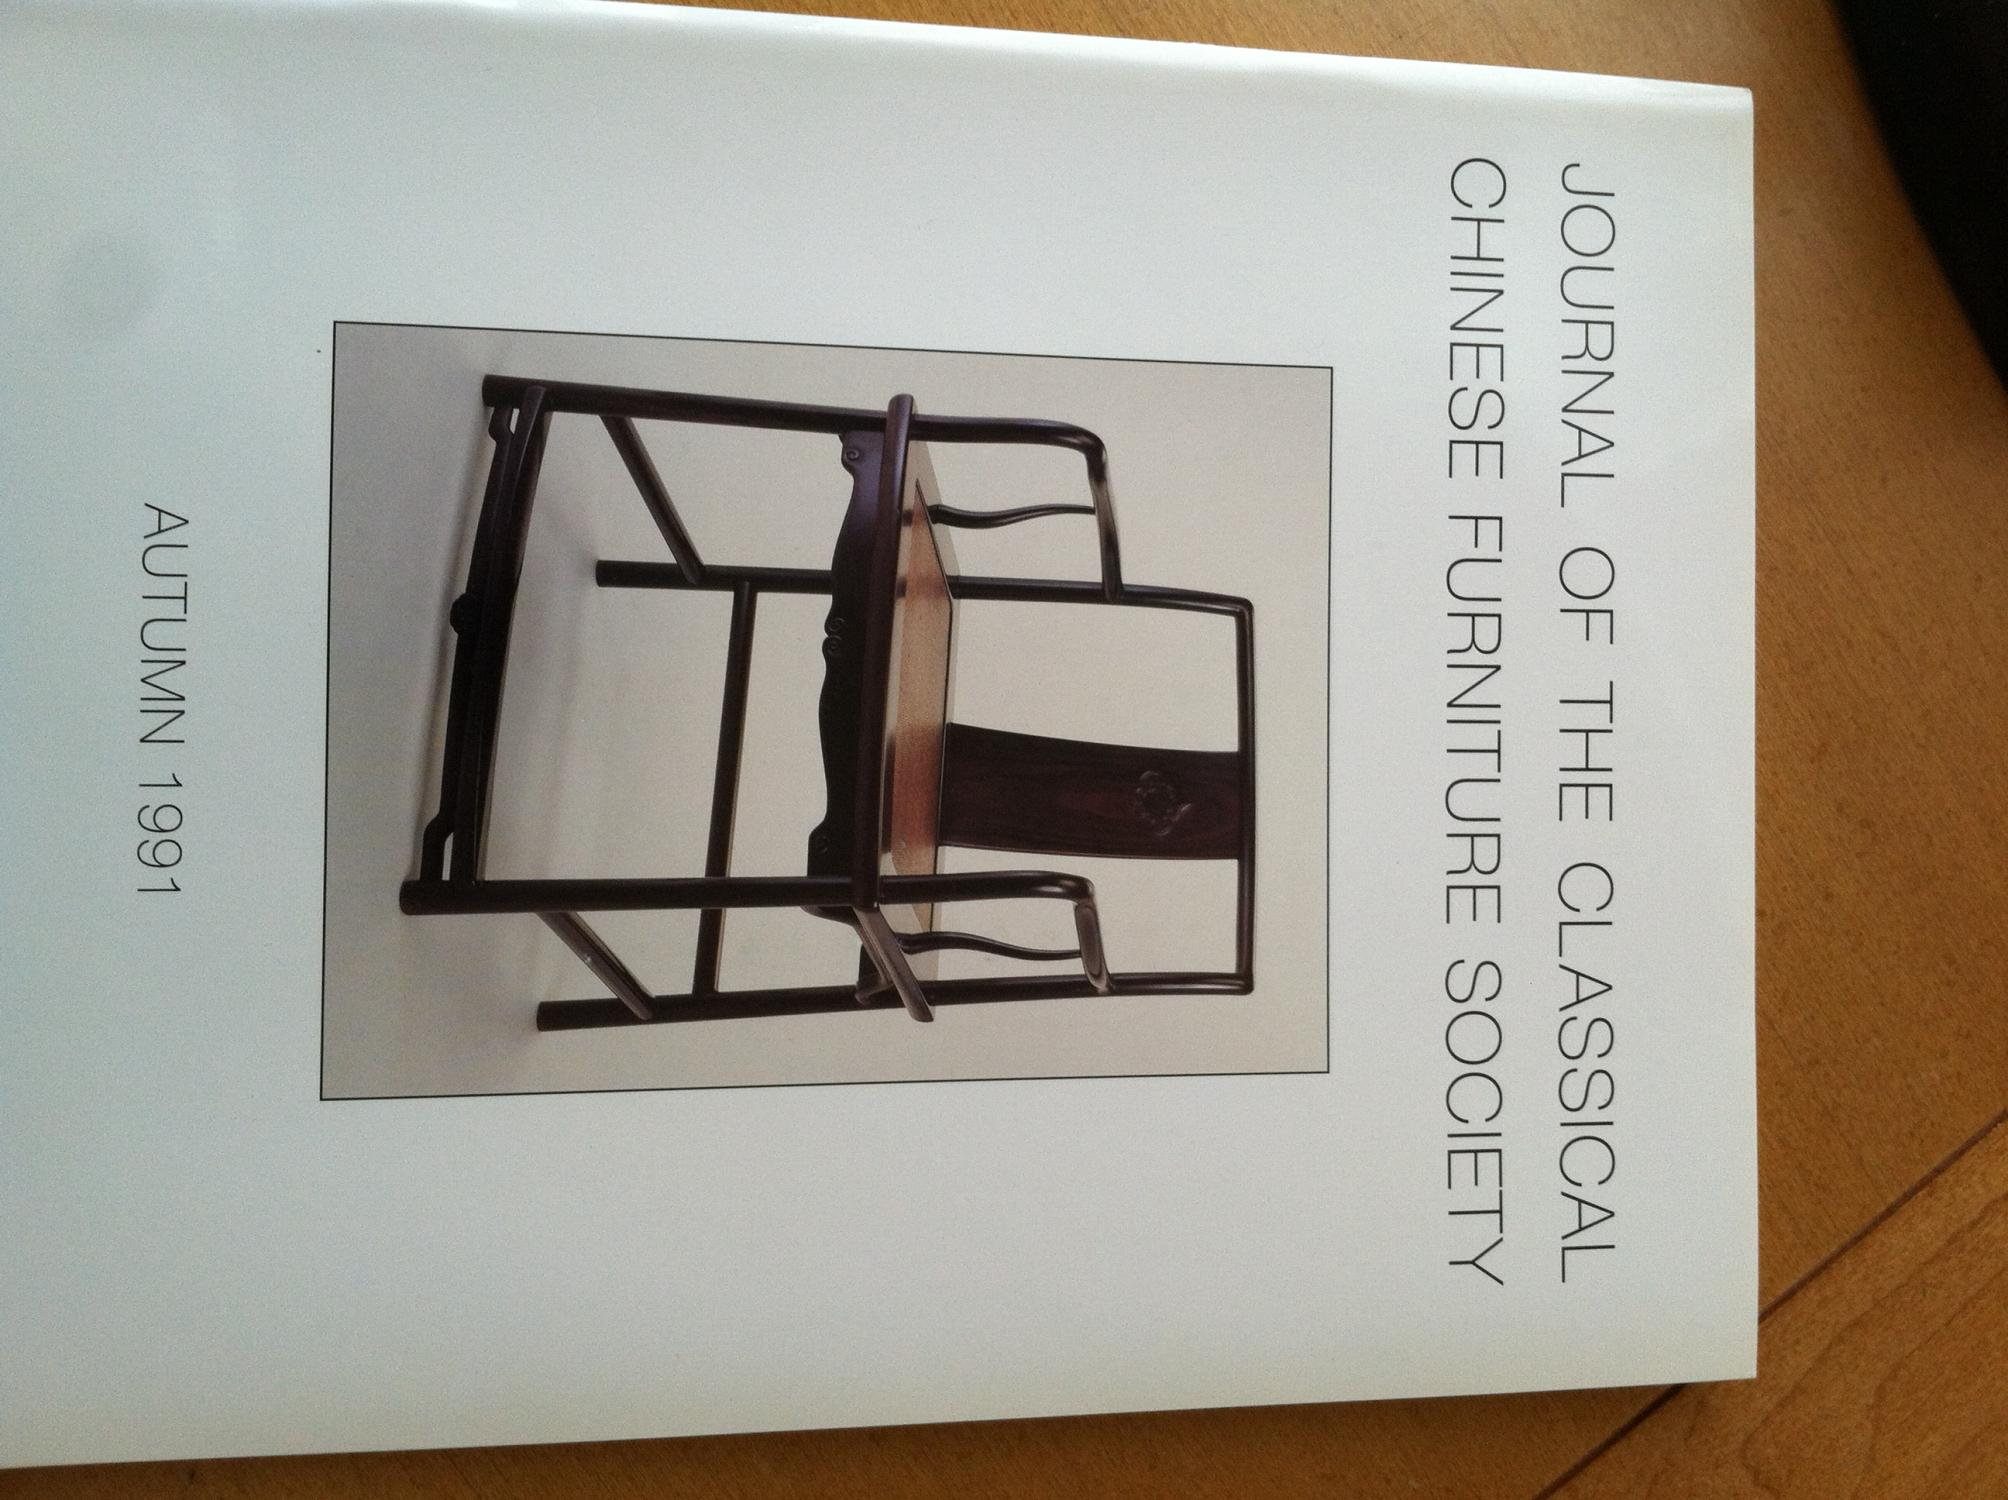 Journal Of The Classical Chinese Furniture Society Autumn 1991,Vol.1,No.